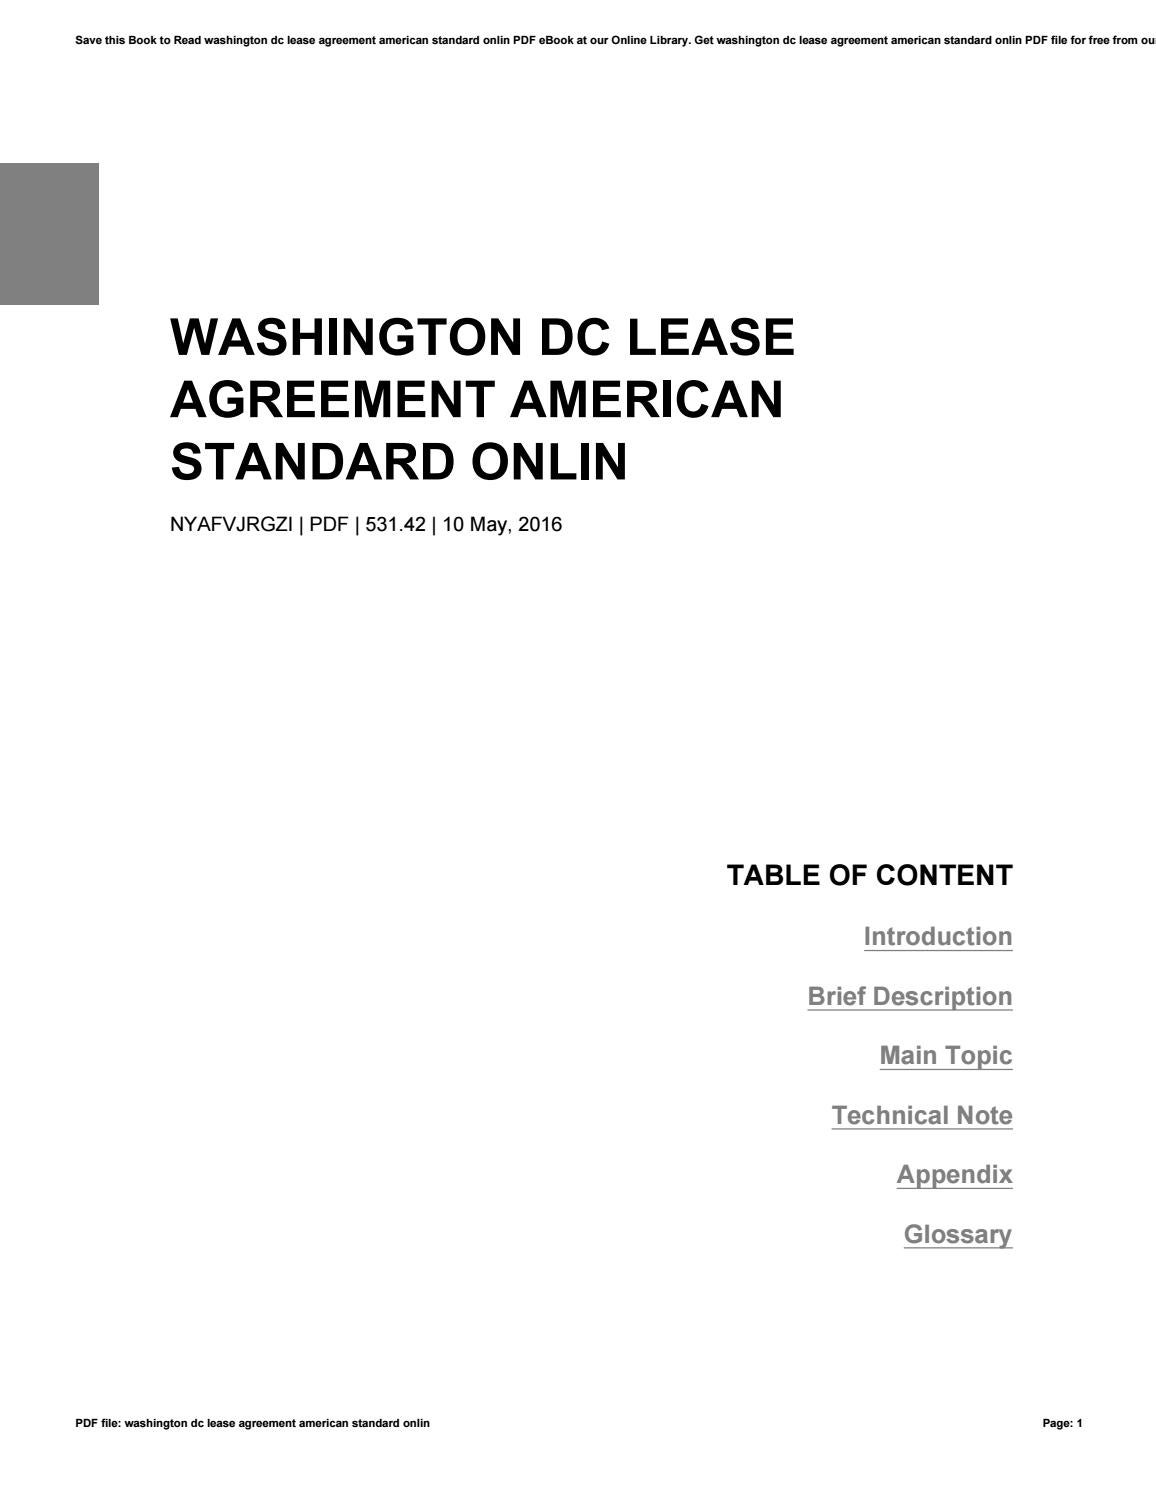 Washington Dc Lease Agreement American Standard Onlin By 0mixmail41